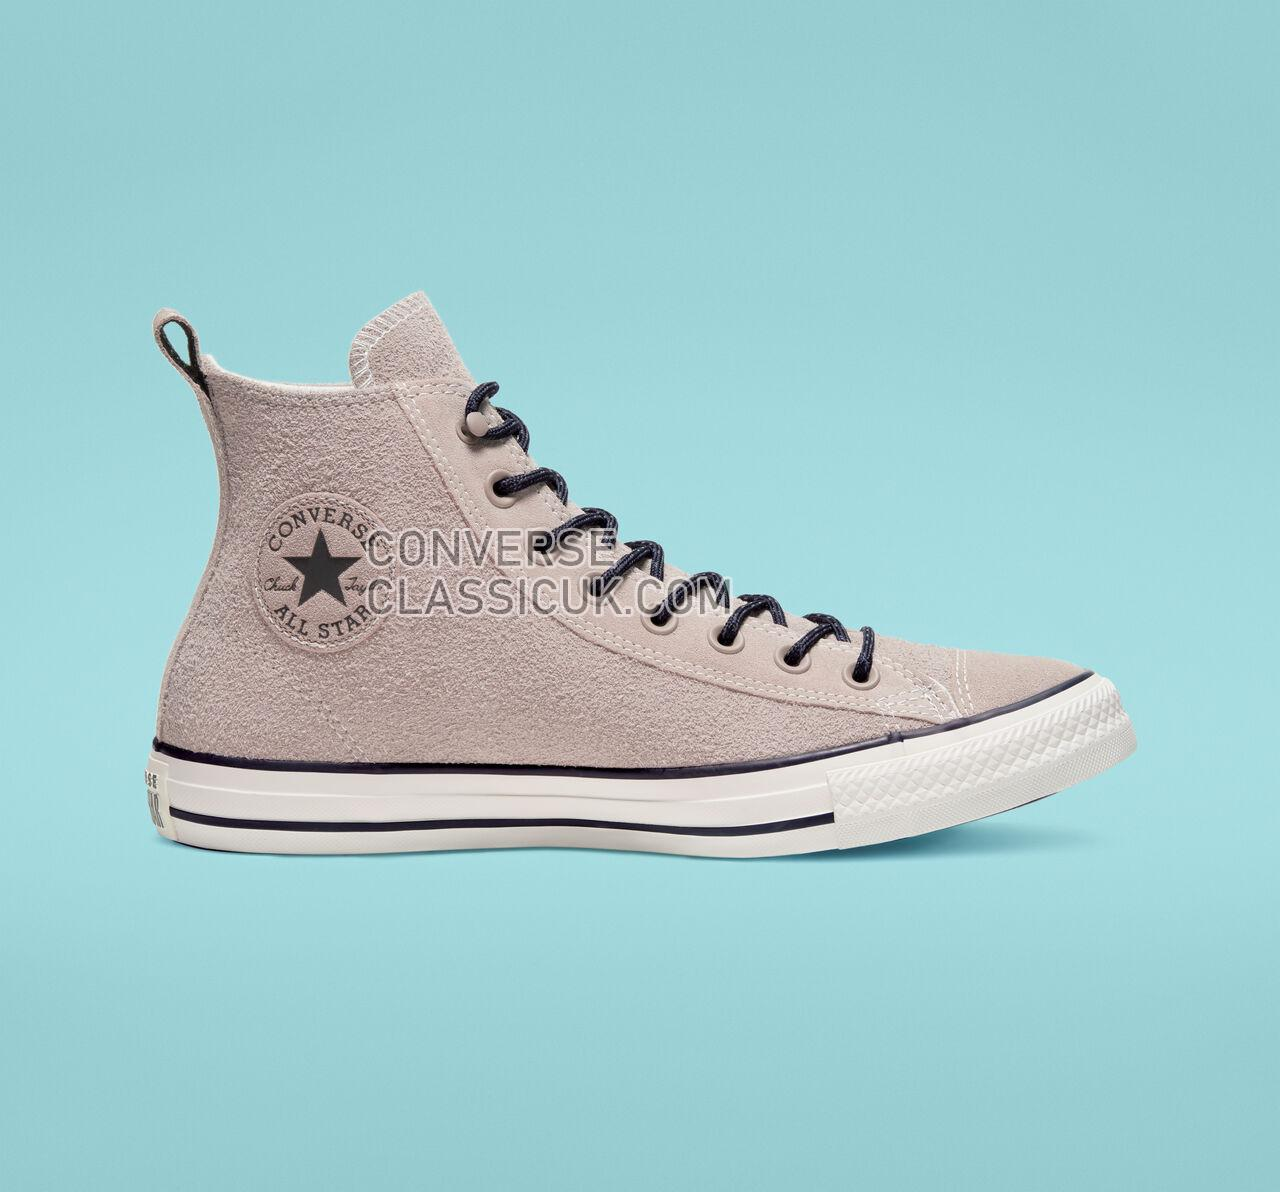 Converse Chuck Taylor All Star Suede High Top Mens Womens Unisex 165843C Hummus/Almost Black/Egret Shoes